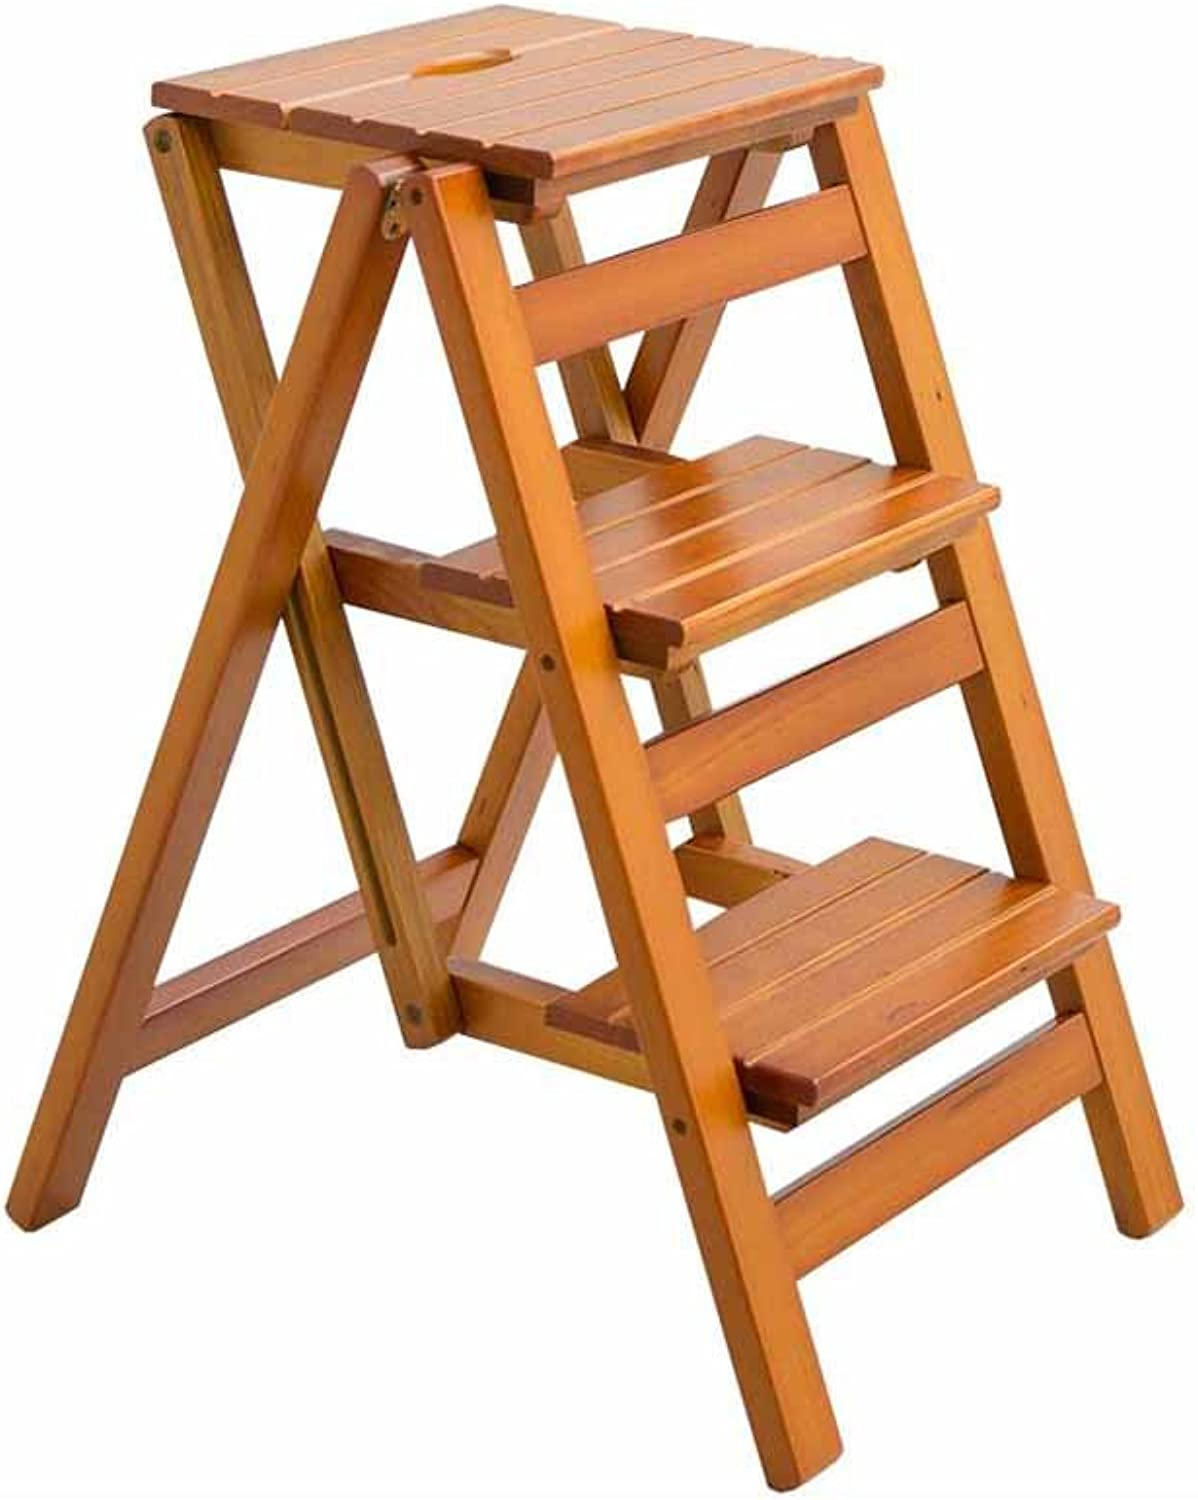 GLJJQMY Folding Ladder Pedal 3 Stepping On Solid Wood Household Portable Multi-purpose Dual-use A-type Indoor Climbing High Stool Mobile Rack 100kg Capacity (walnut)